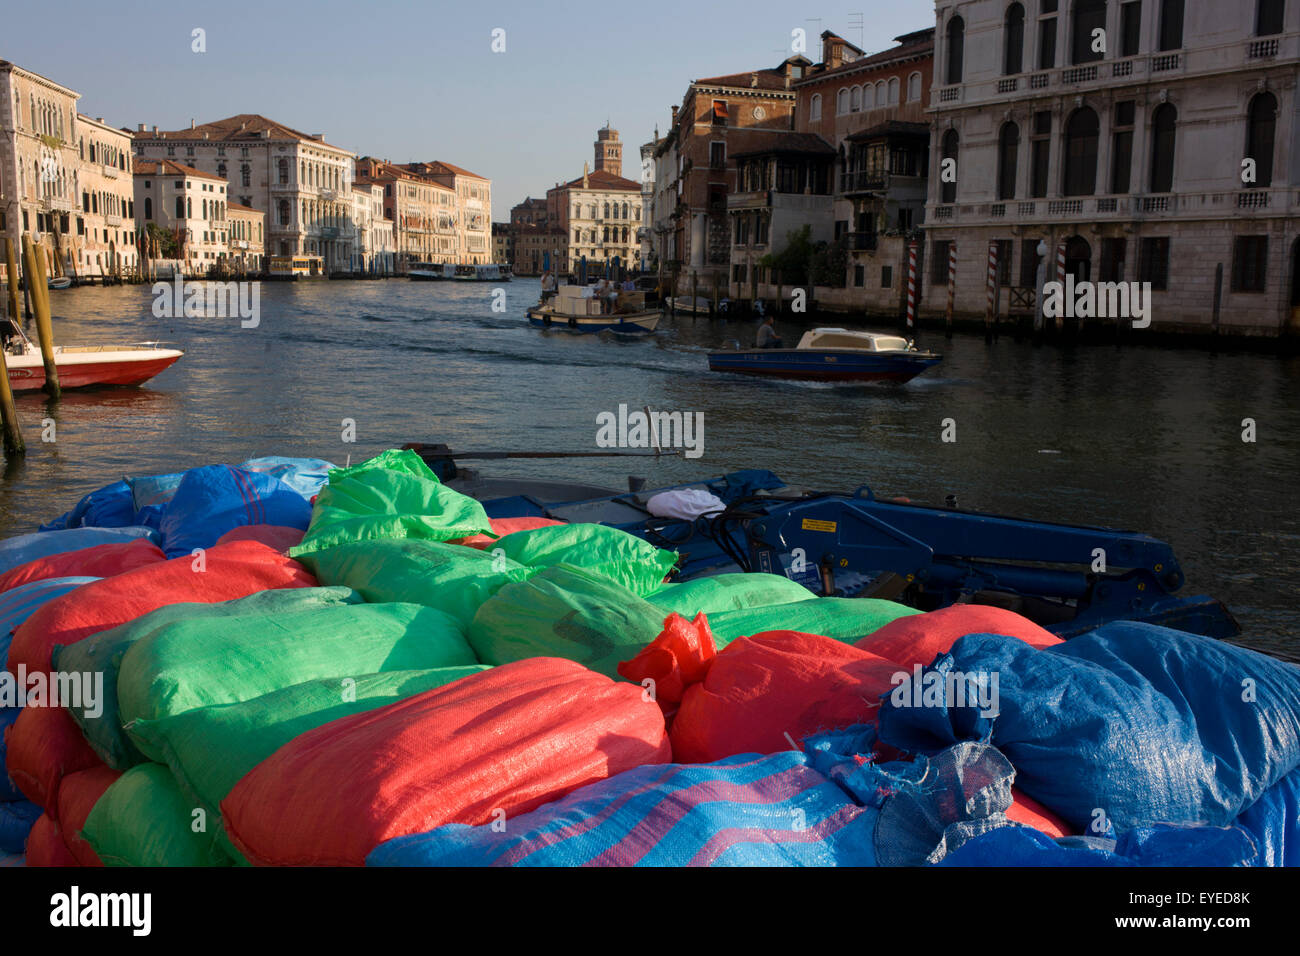 Sacks of supplies ready for unloading from a boat on the Grand Canal, Venice. - Stock Image